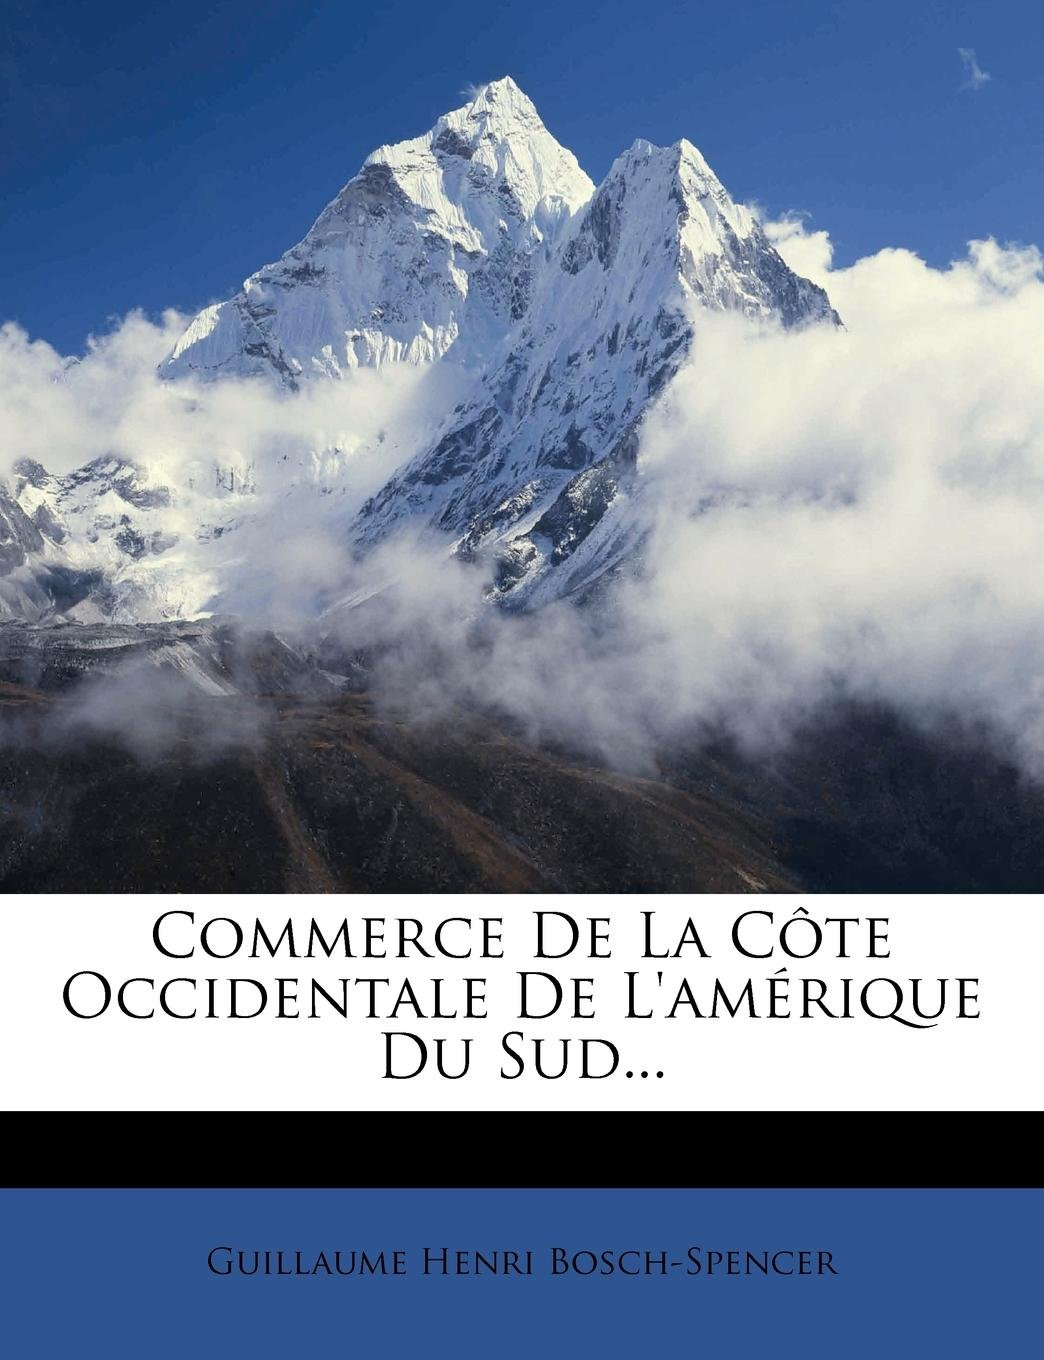 Le commerce Sud-Sud